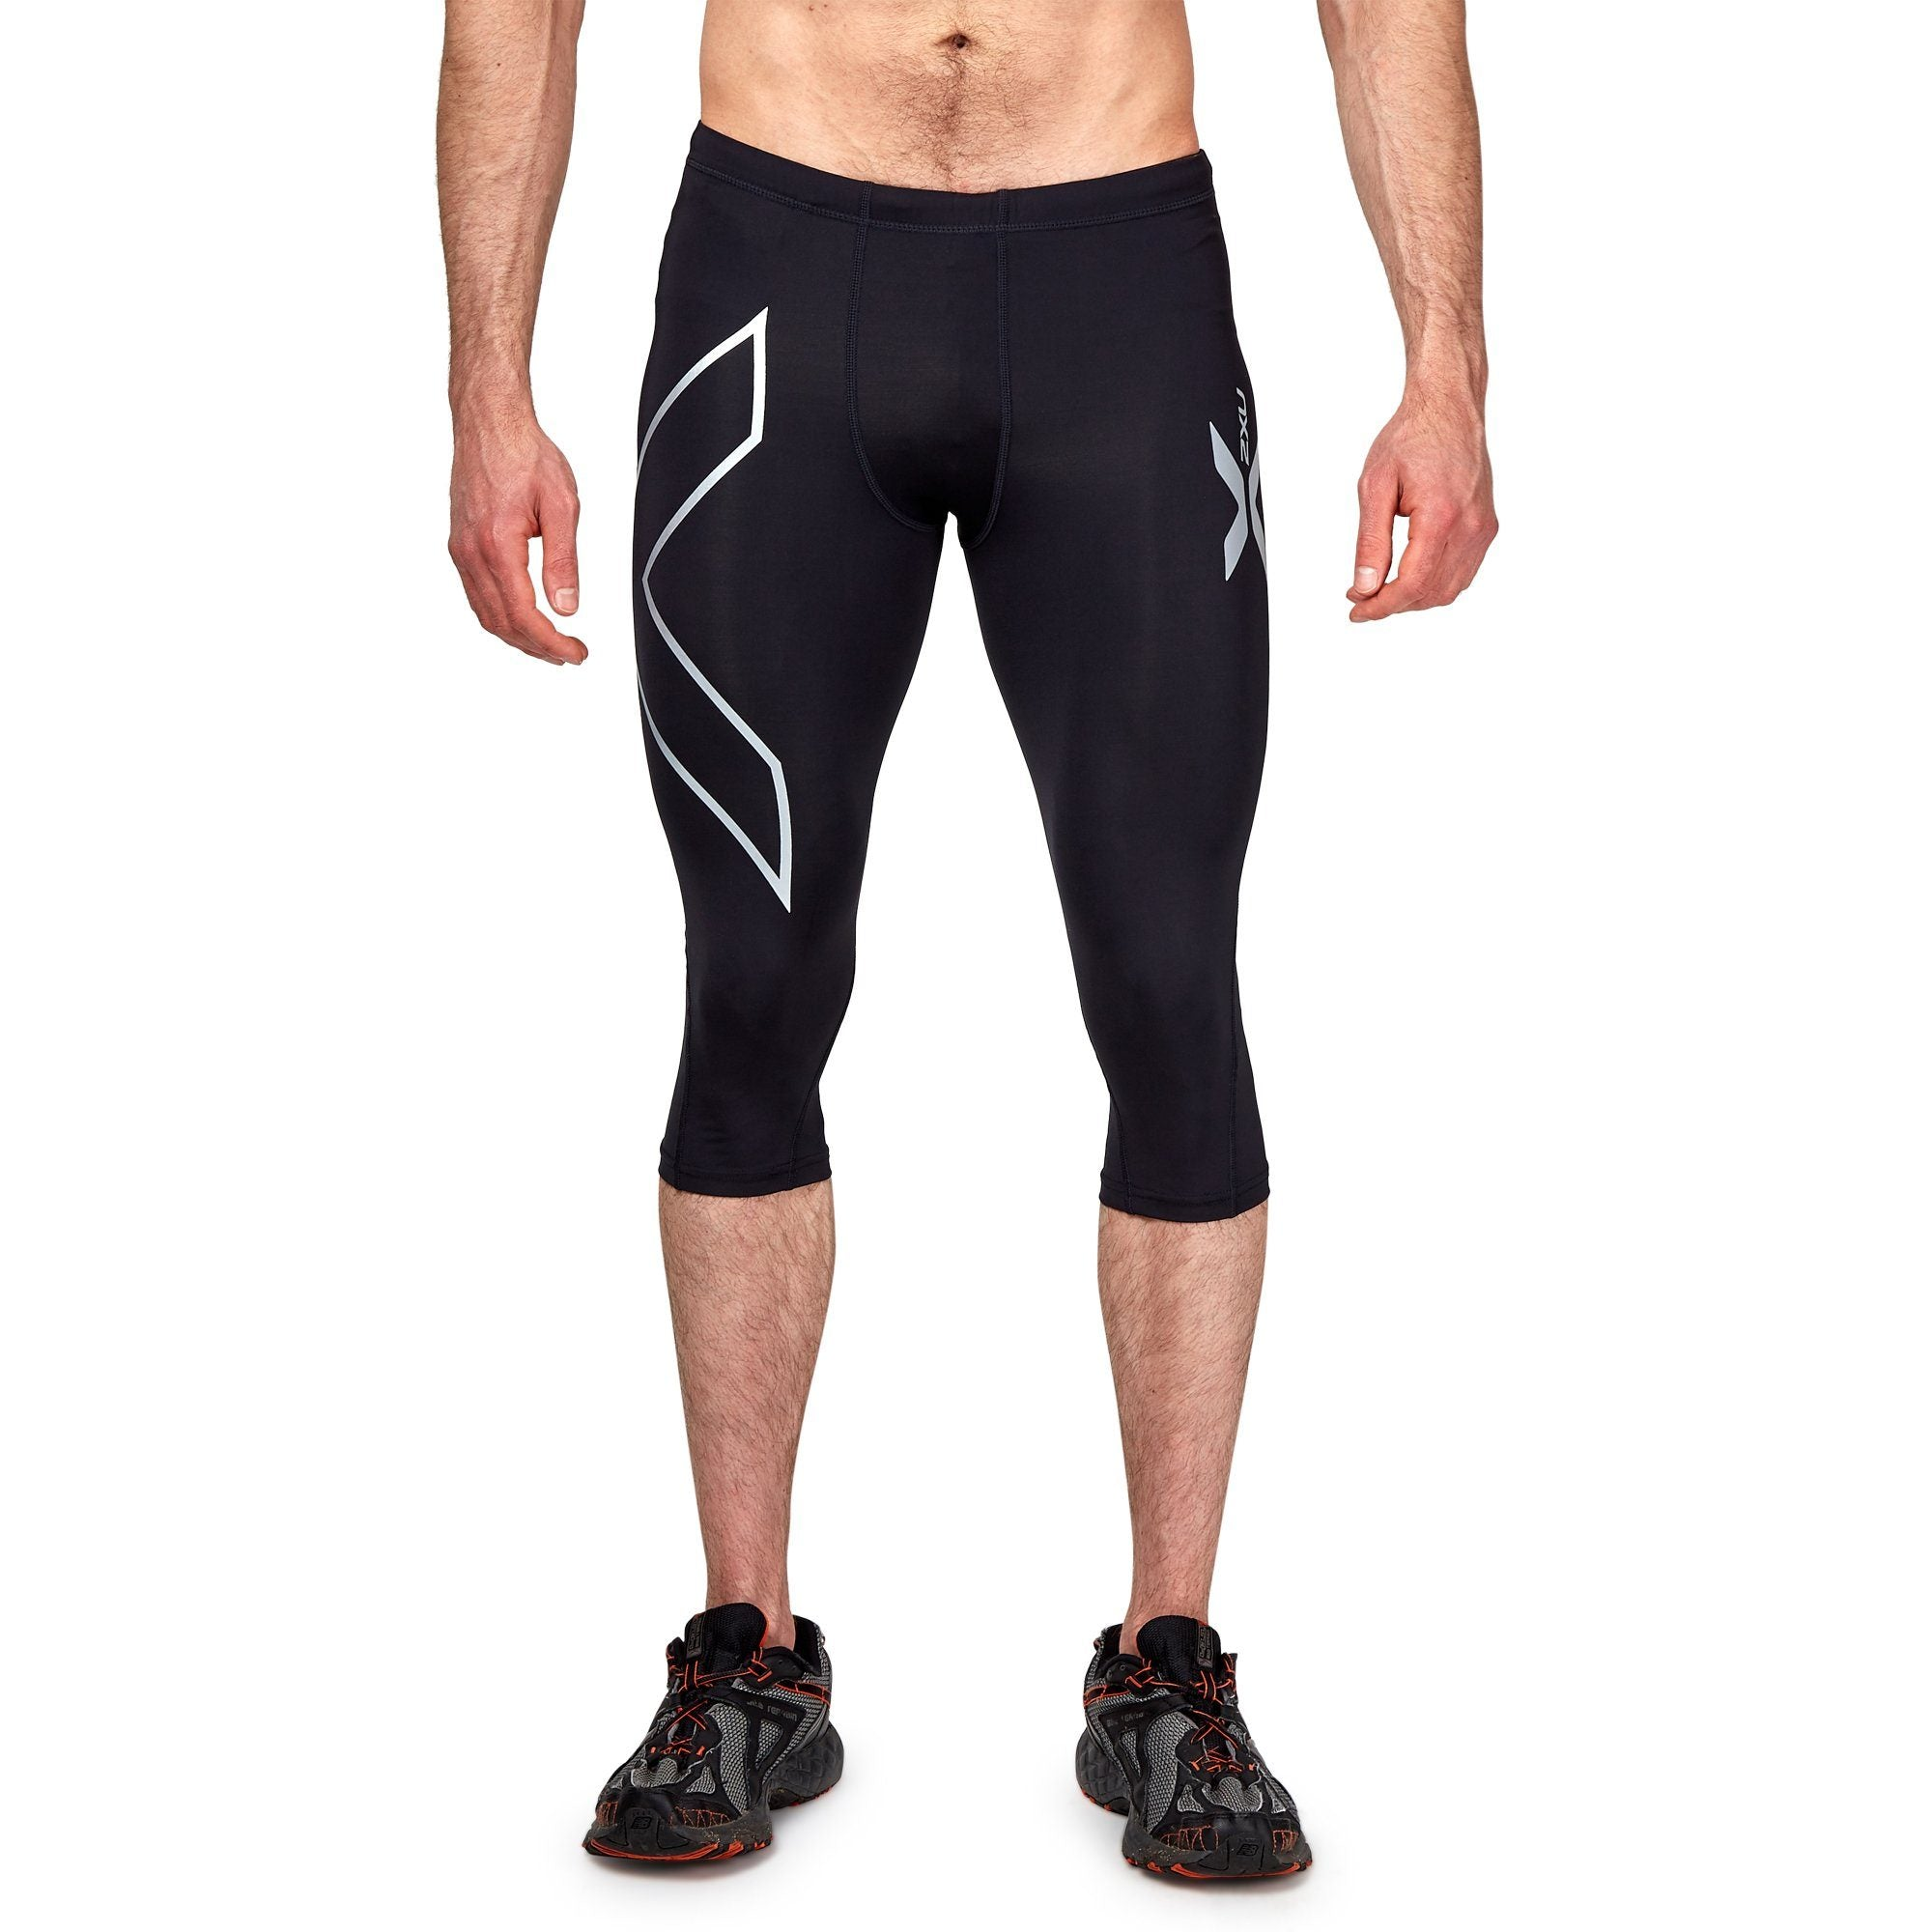 2XU Men's Compression 3/4 Tights - Black/Black Apparel 2XU